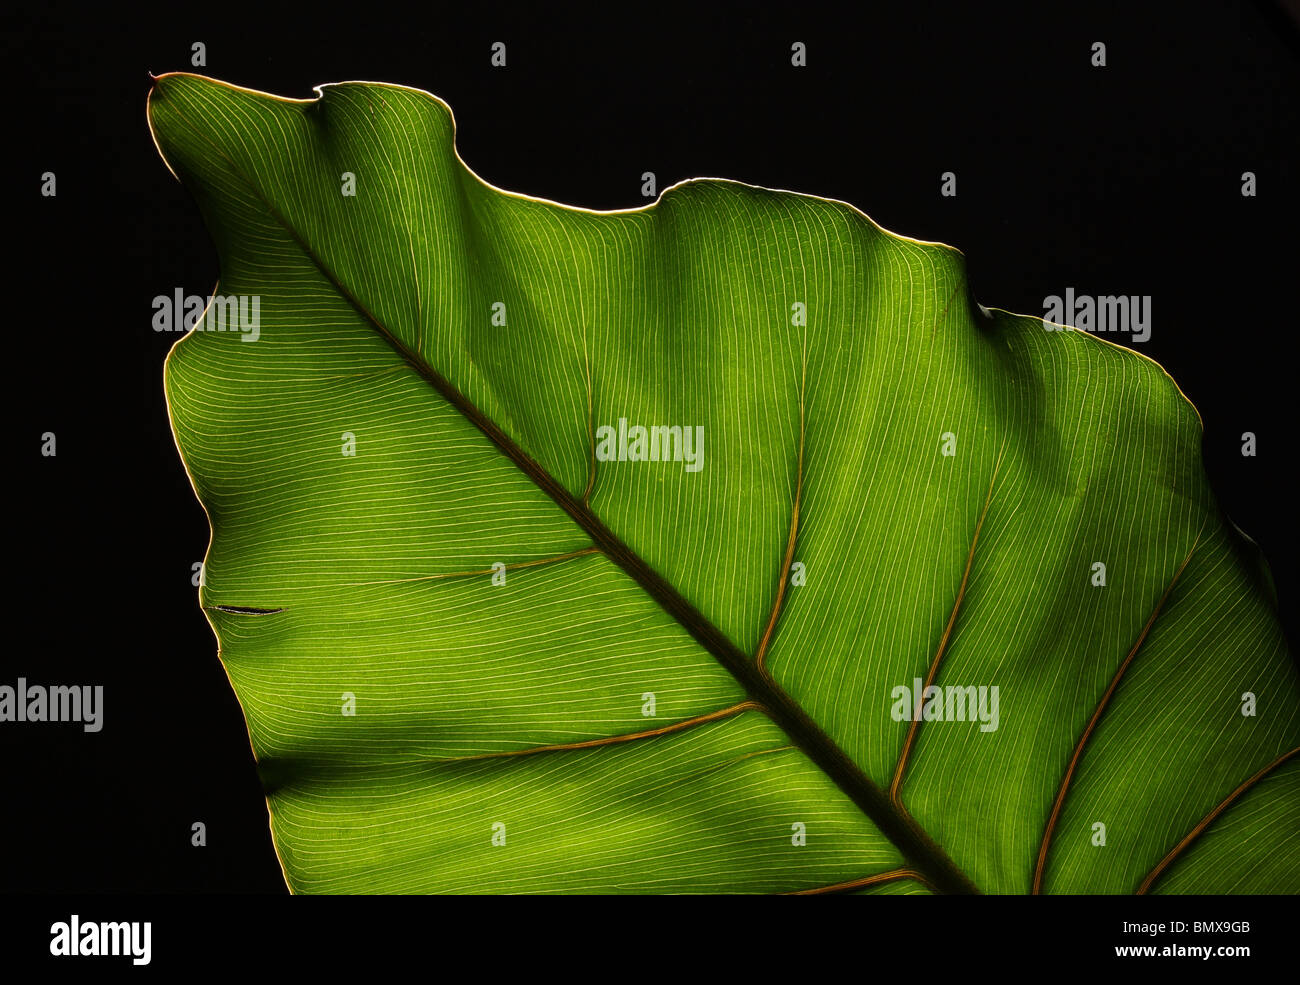 Green plant leaf with strong structure on a black background - Stock Image